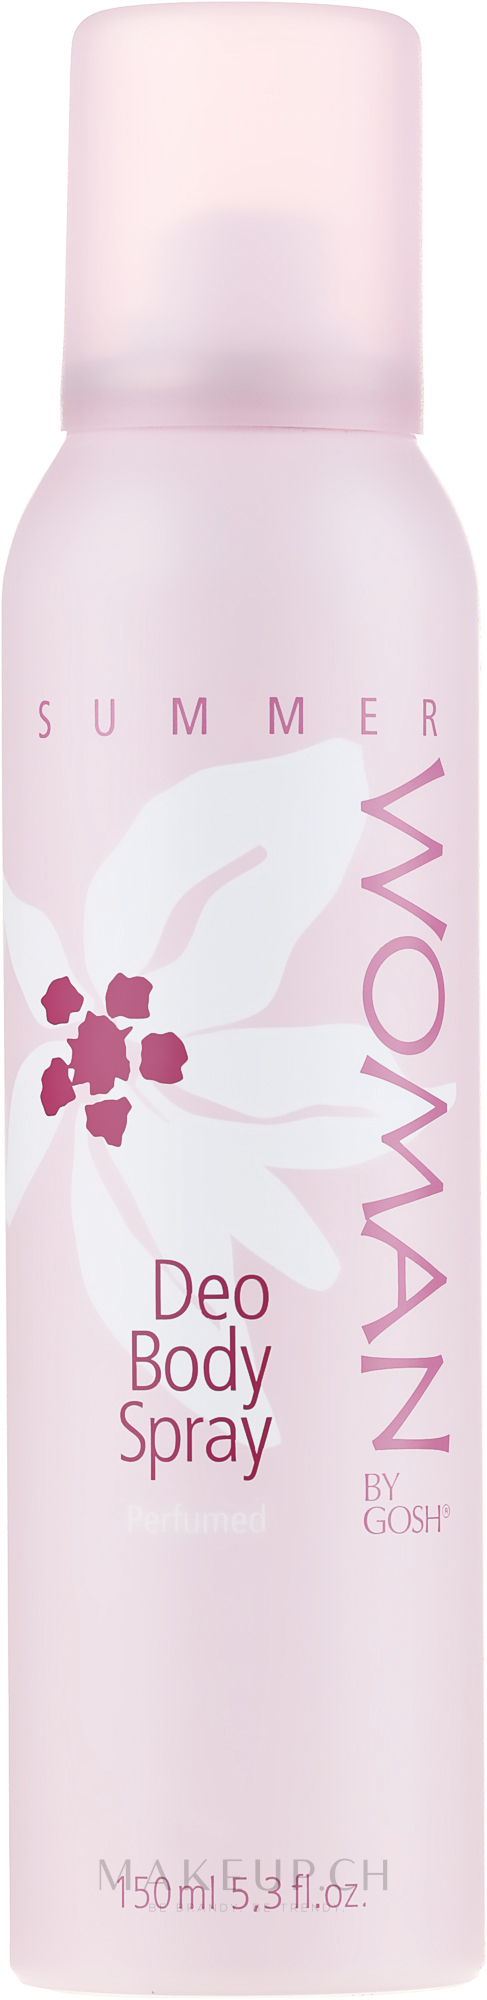 Deospray - Gosh Woman Summer Deo Body Spray — Bild 150 ml